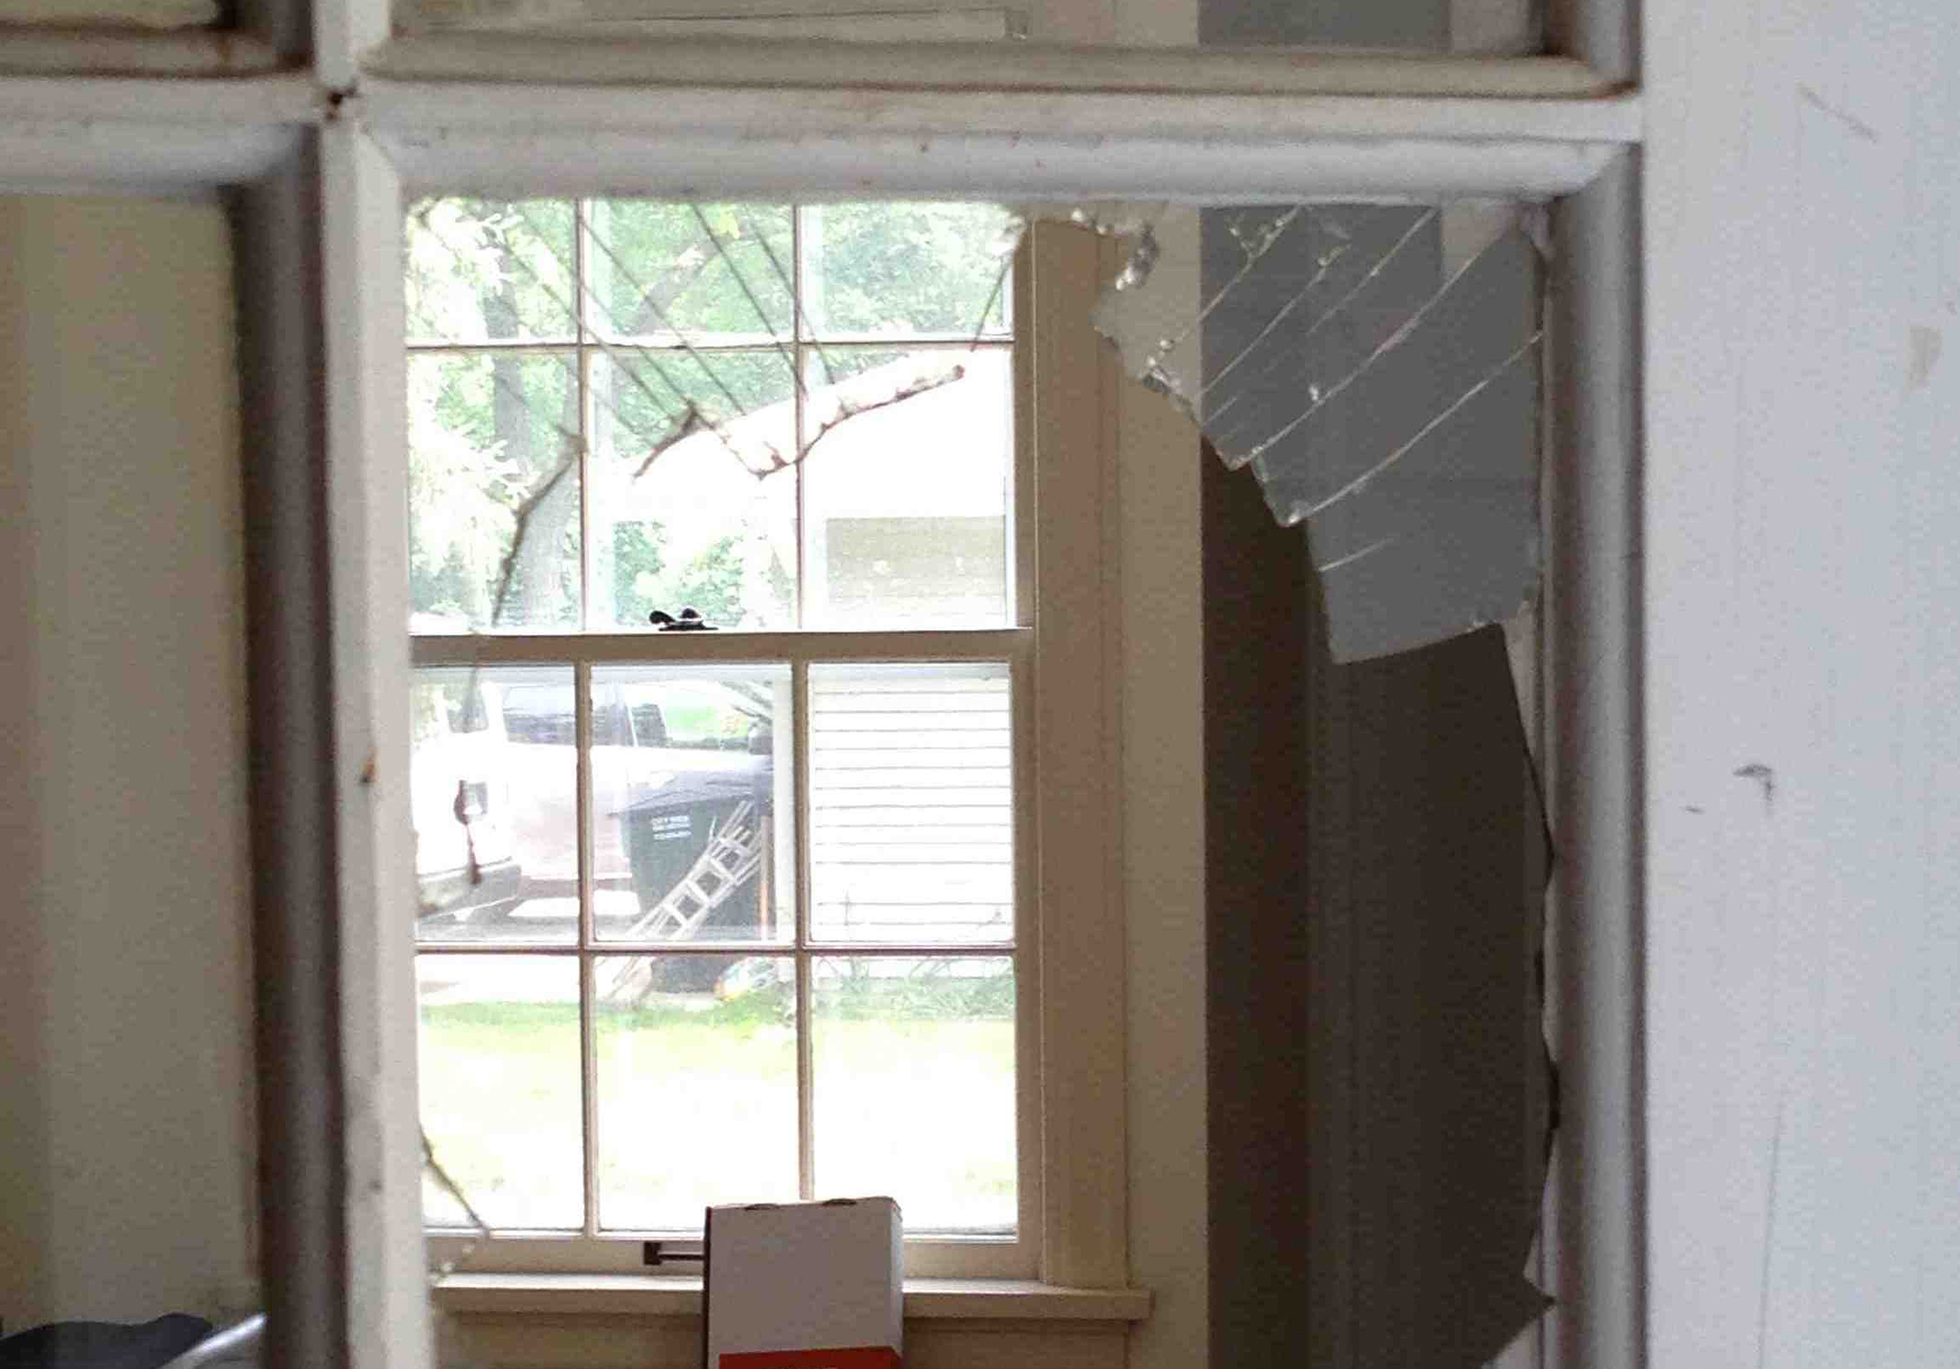 Broken Window Repair Or Replace Houselogic Window